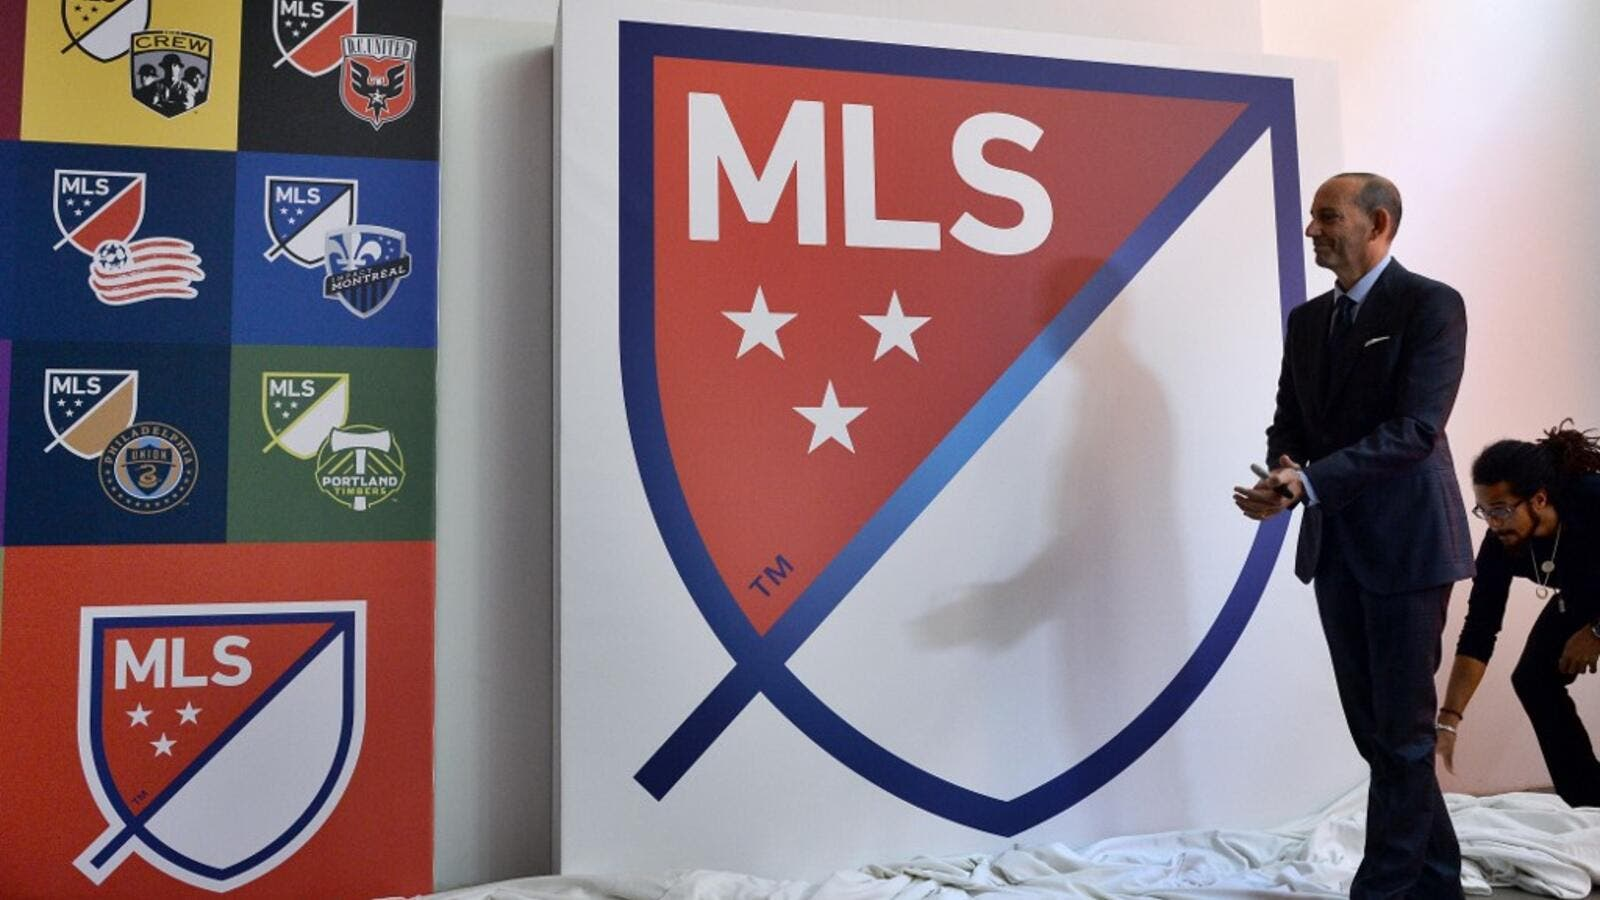 MLS facing lockout after owners reject players' proposal